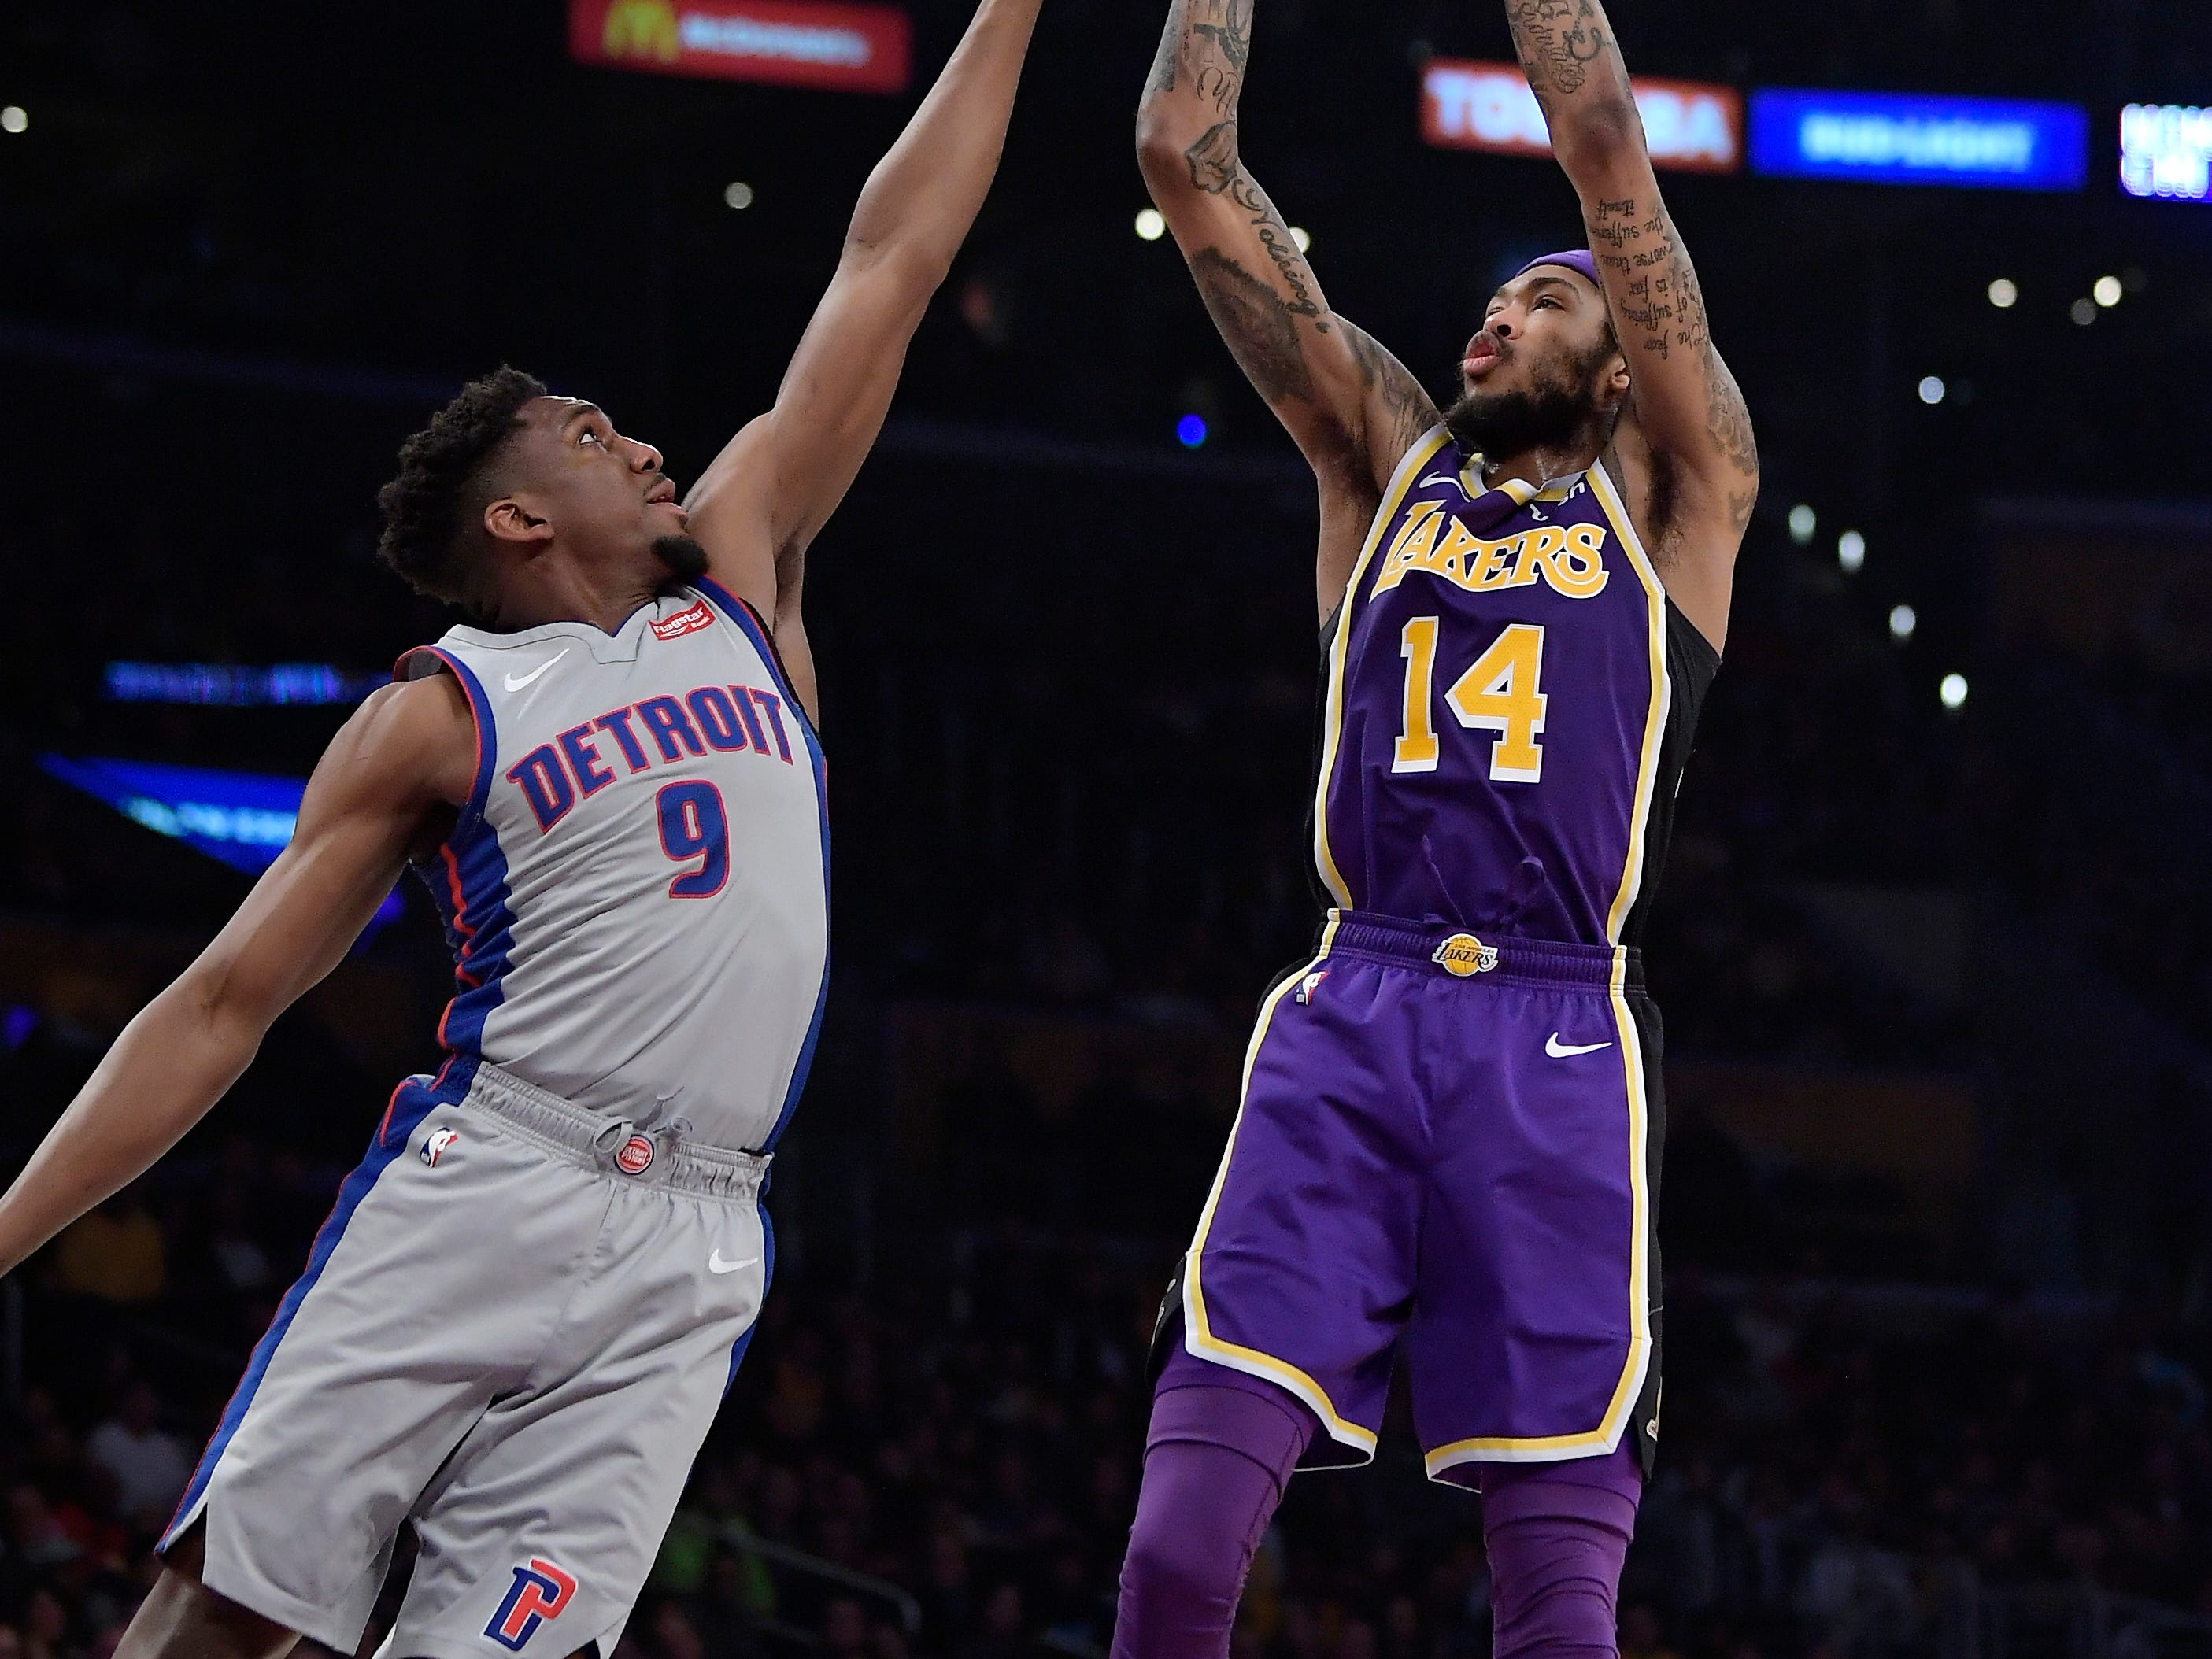 Los Angeles Lakers forward Brandon Ingram, right, shoots as Detroit Pistons guard Langston Galloway defends during the second half.